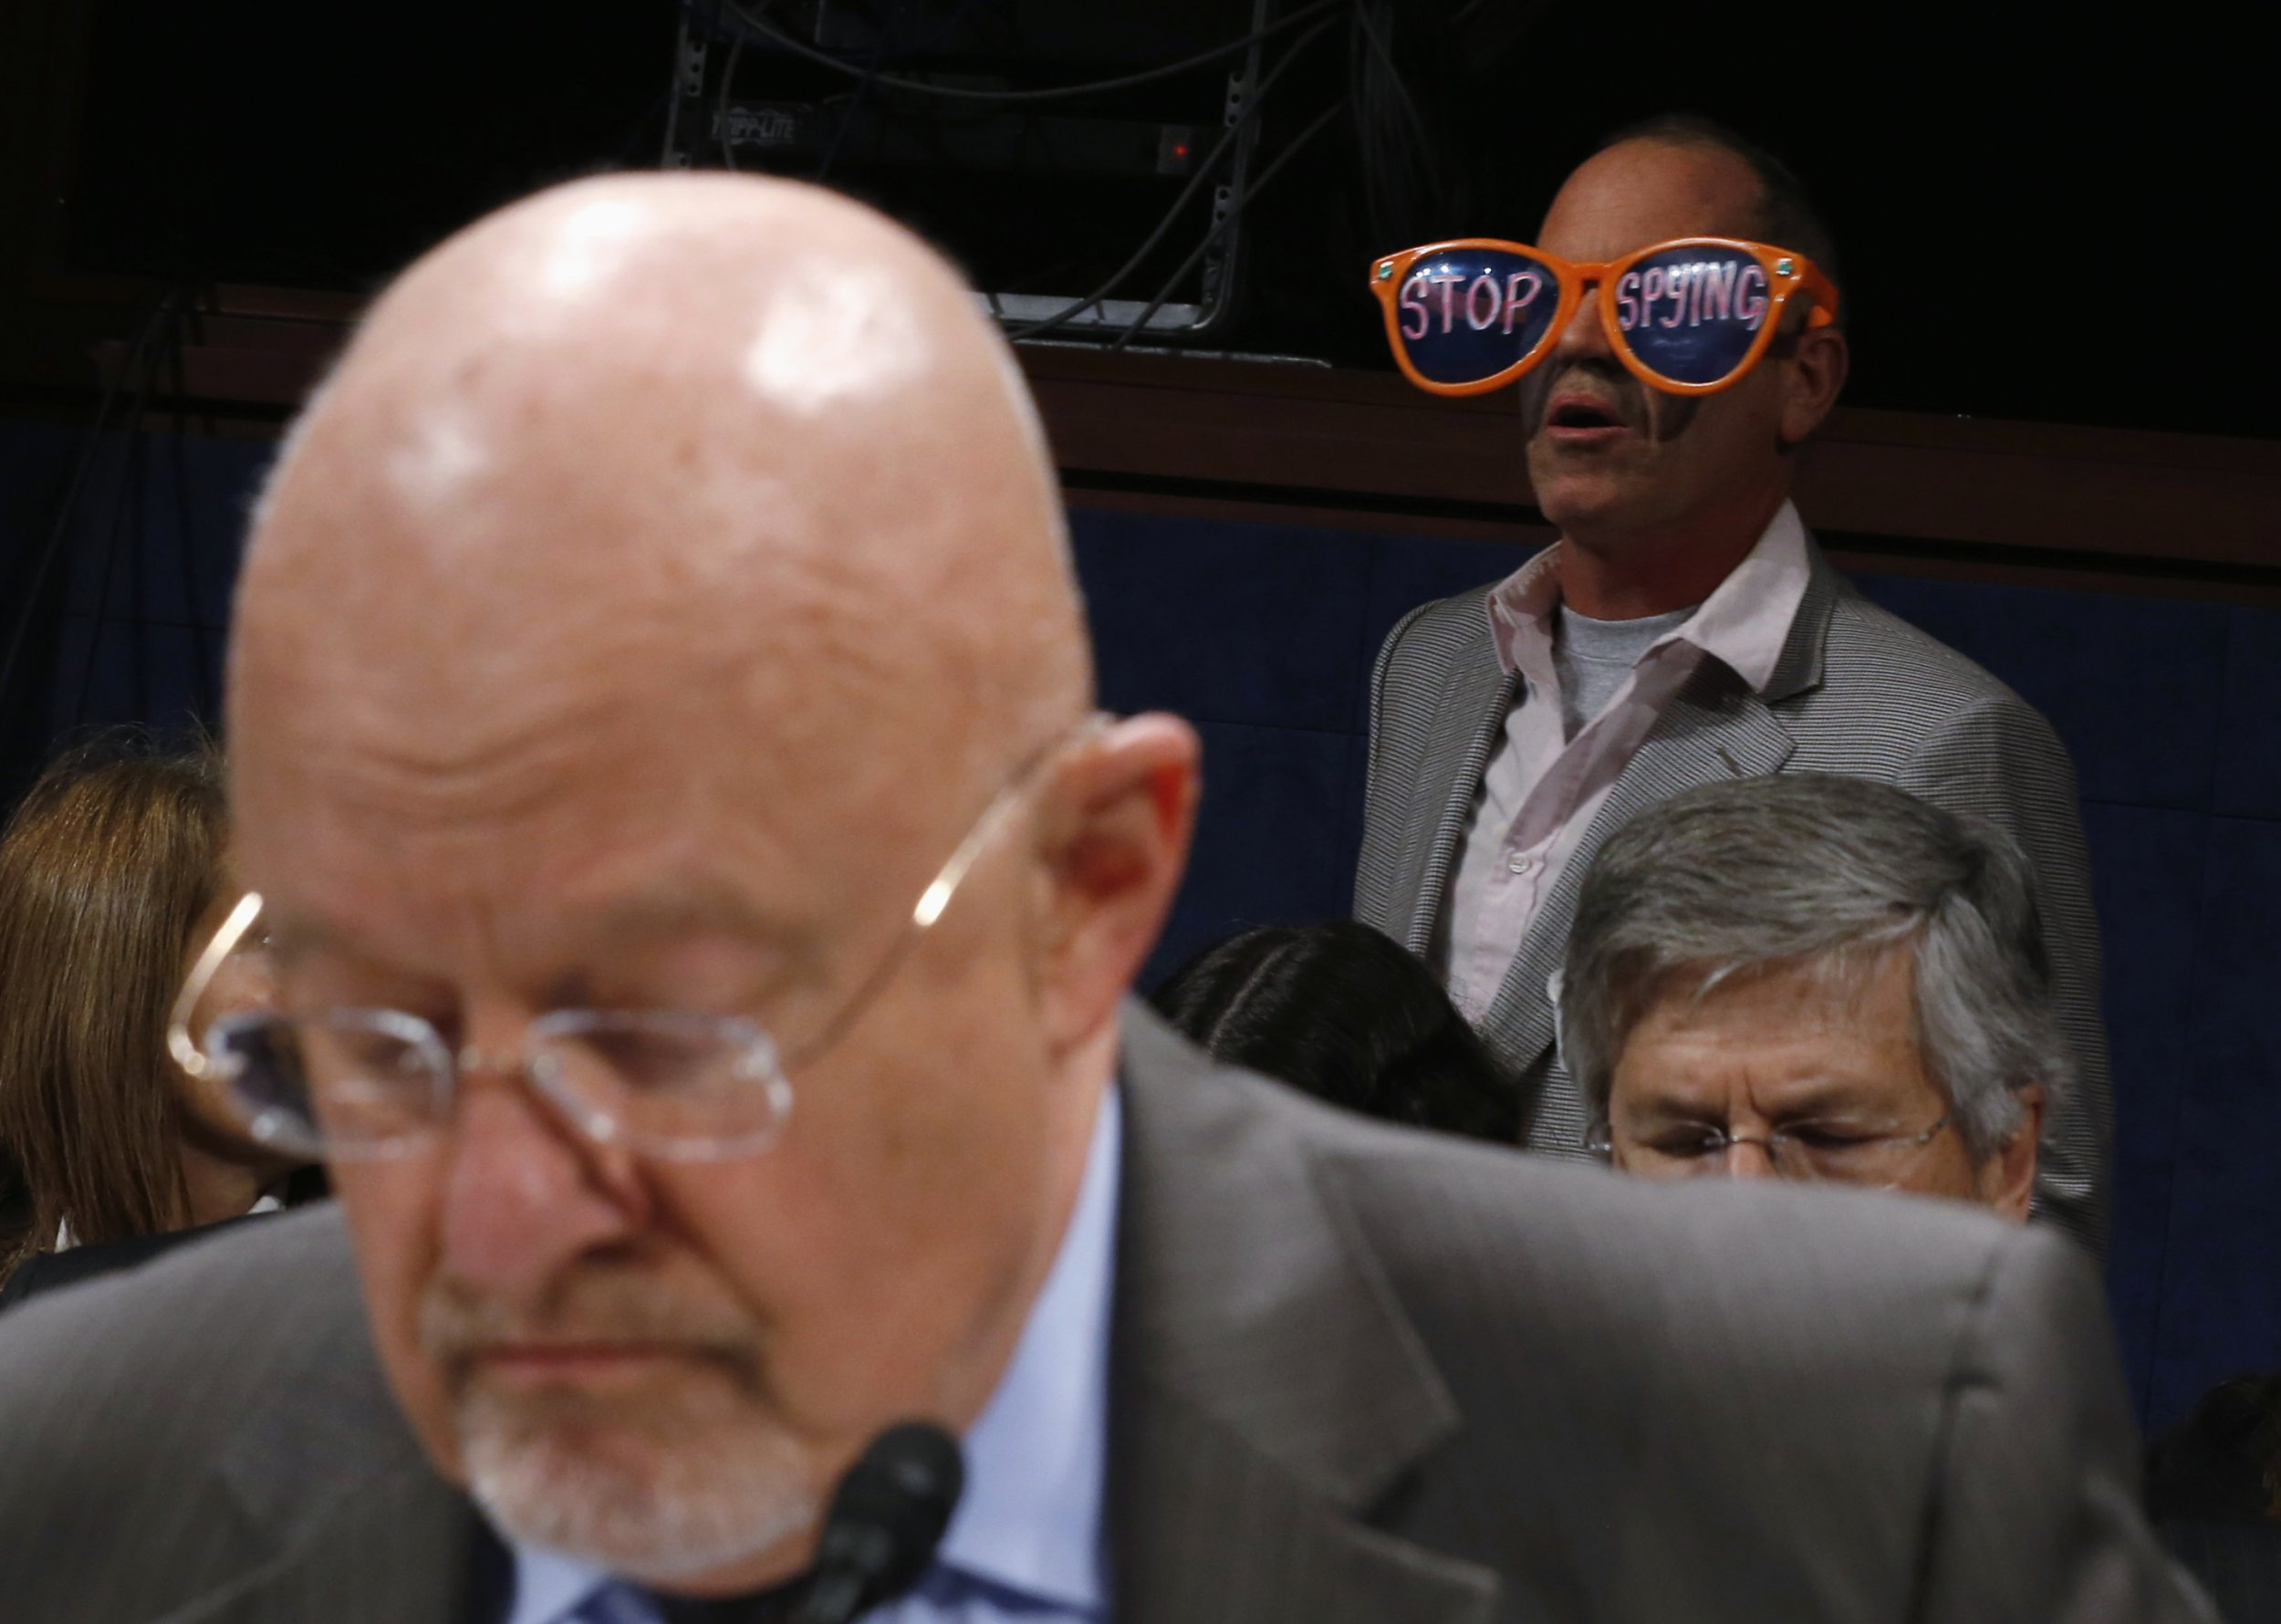 StopSpying_Clapper